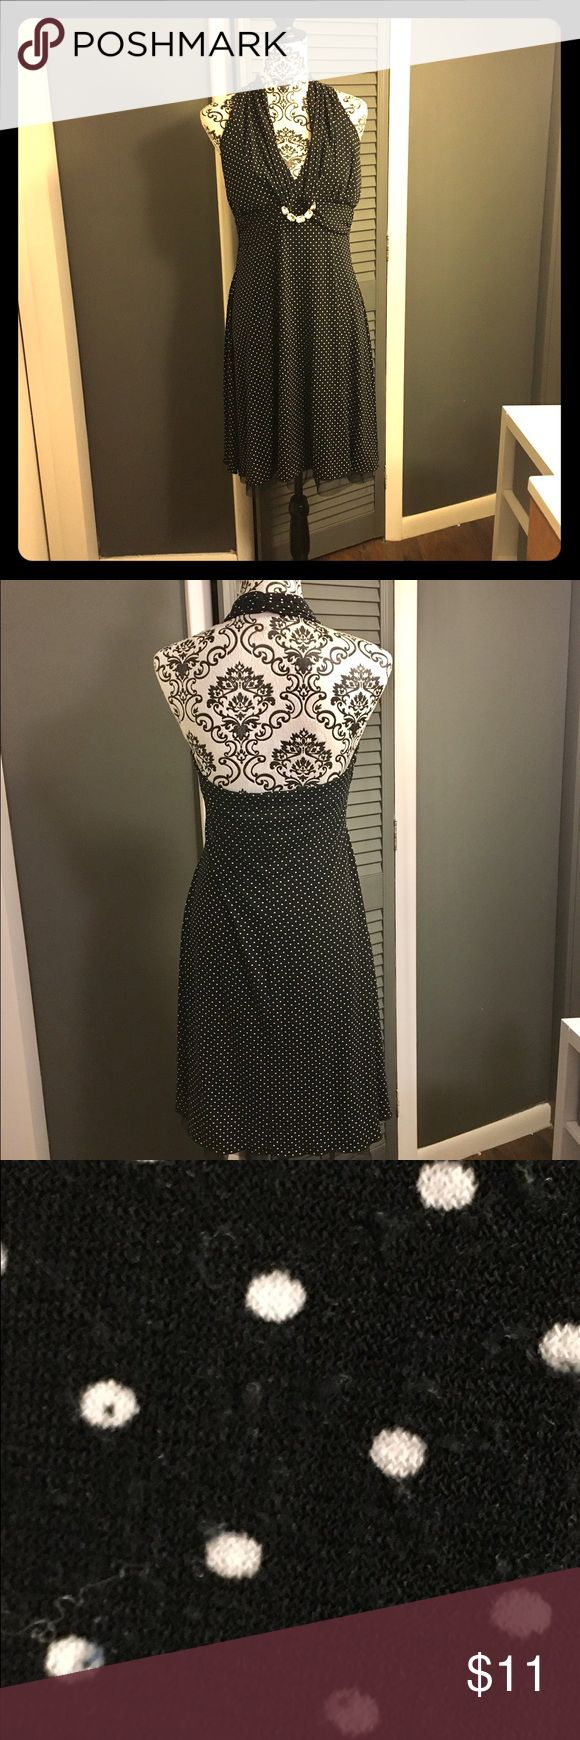 Polka Dot Halter Top Cocktail Dress This is in good used condition. The only flaw is some minor pilling in one spot on the back. Has an adorable clear rhinestone embellishment on the front. My Michelle Dresses Midi